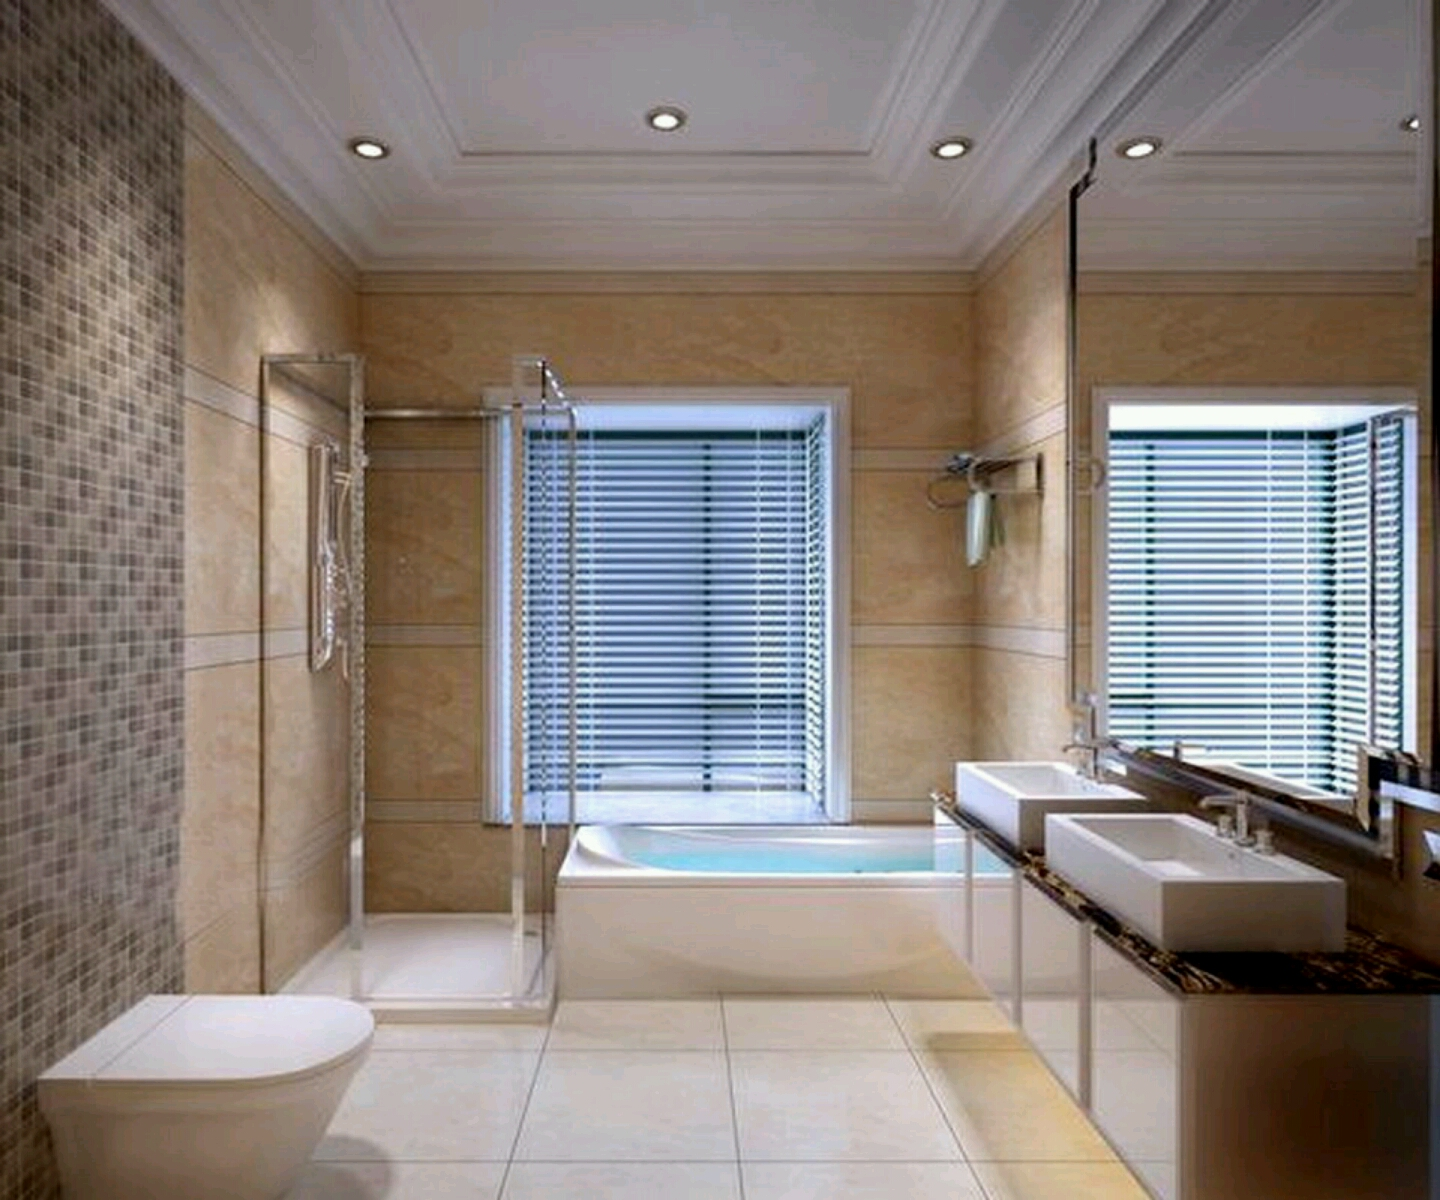 Modern bathrooms best designs ideas. | New home designs